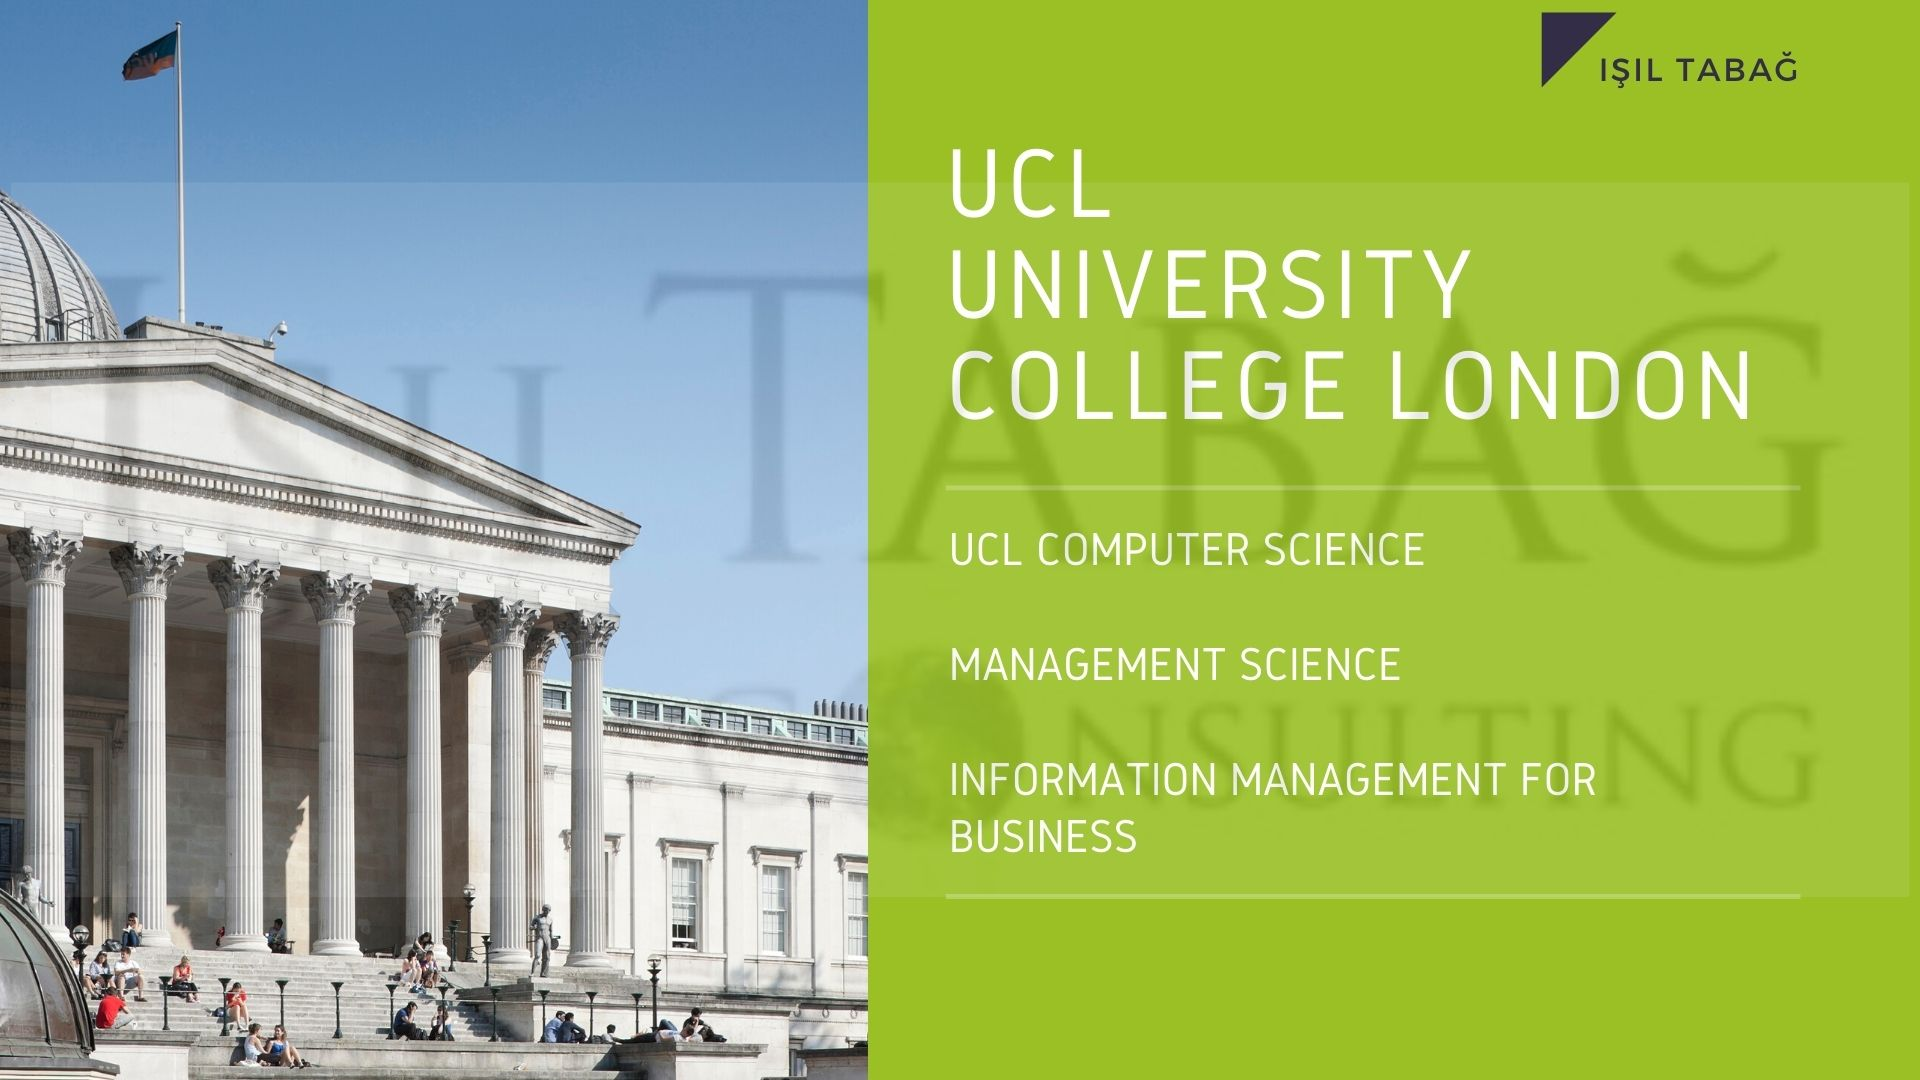 UCL Computer science  management science Information Management for Business Isil Tabag